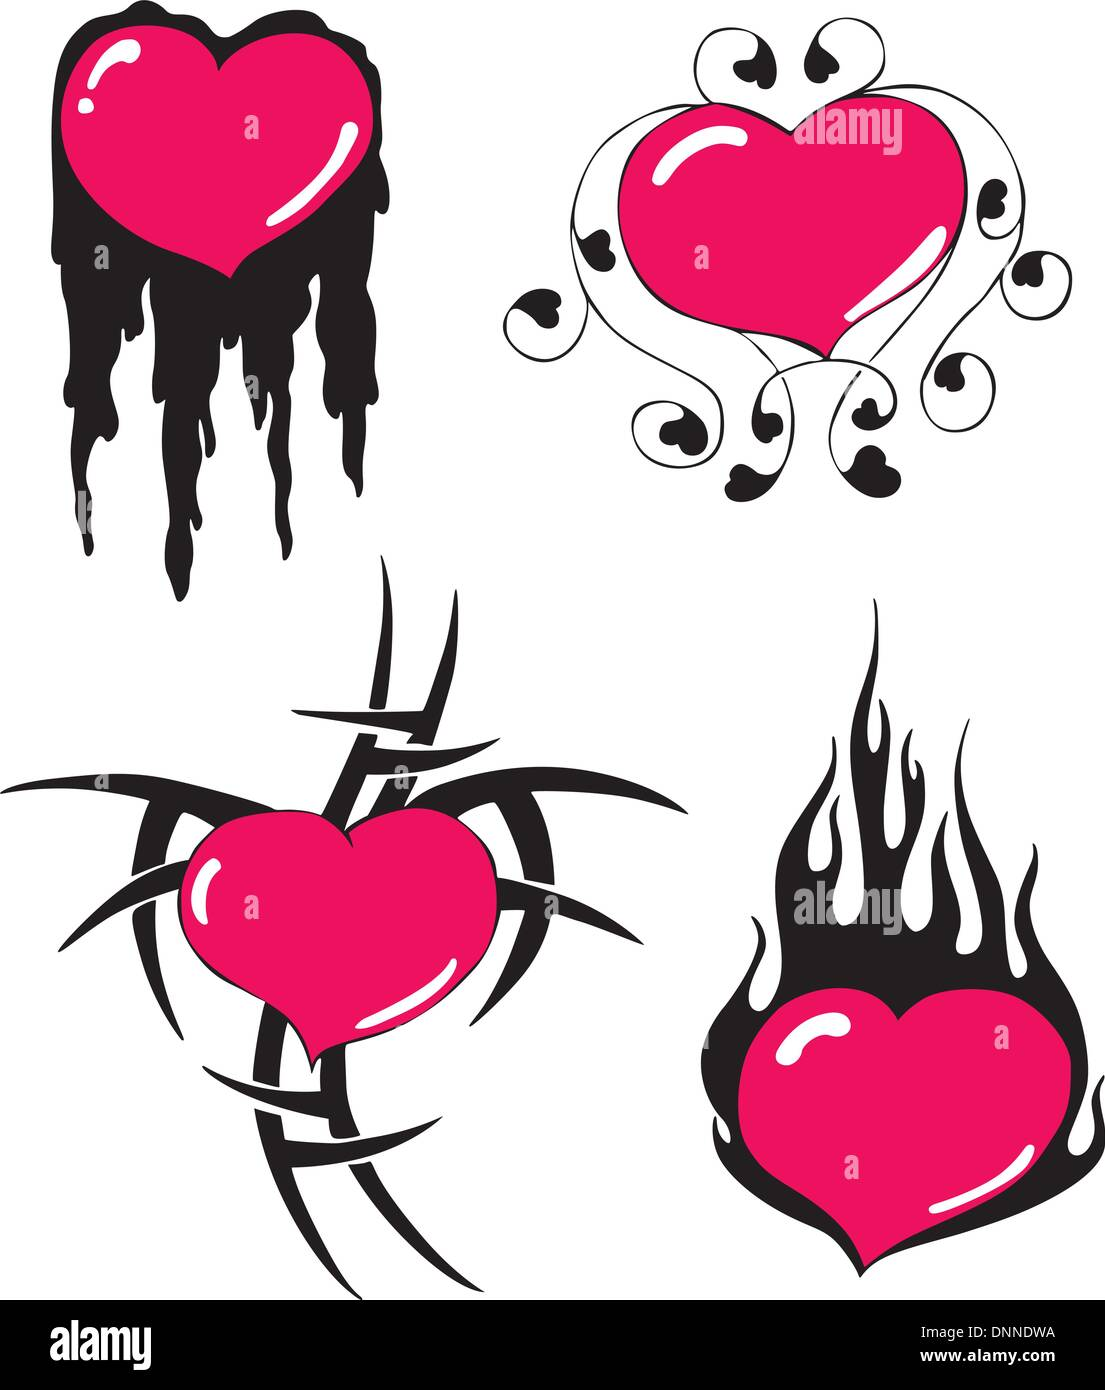 Simple heart designs. Set of black and red vector illustrations. - Stock Image